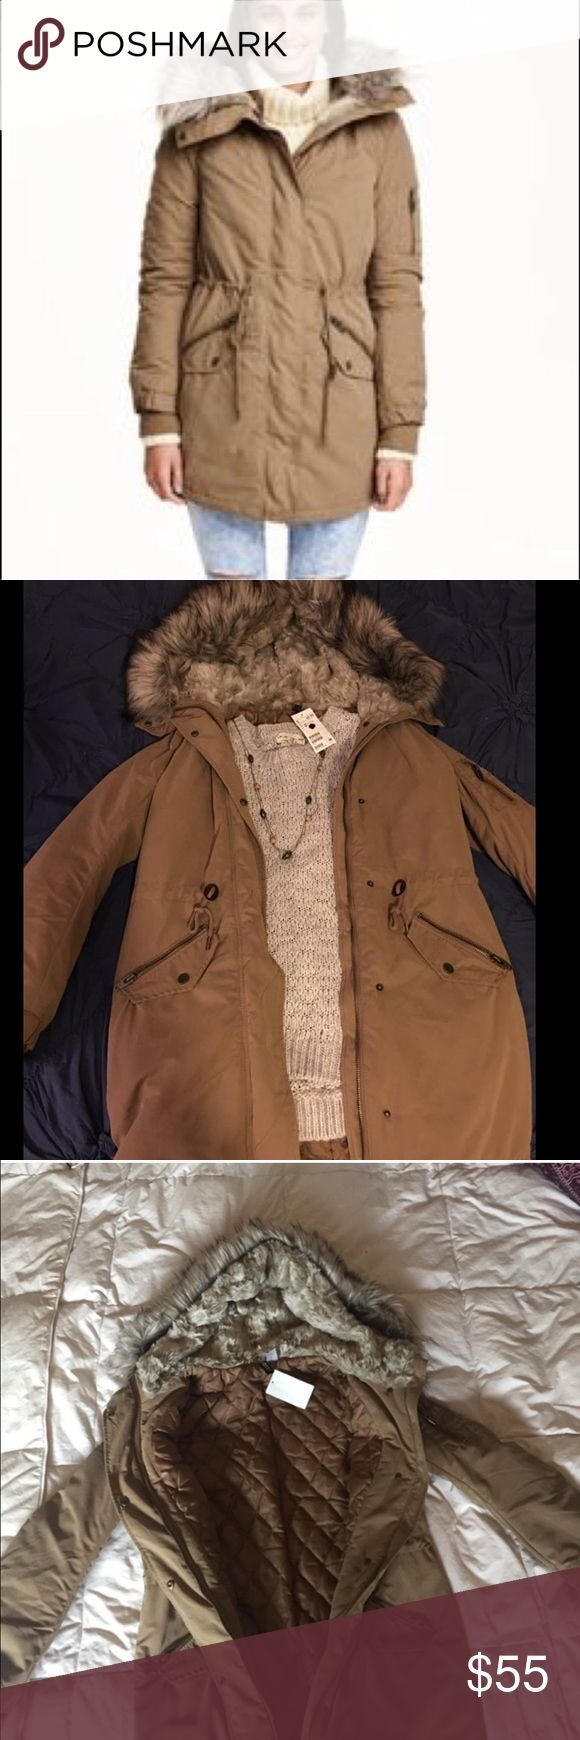 NET fur hooded parka New with tags H&M Fur hood parka, detachable hood, size 2, color is khaki green and sold out in stores. Cheaper on ppal!! H&M Jackets & Coats